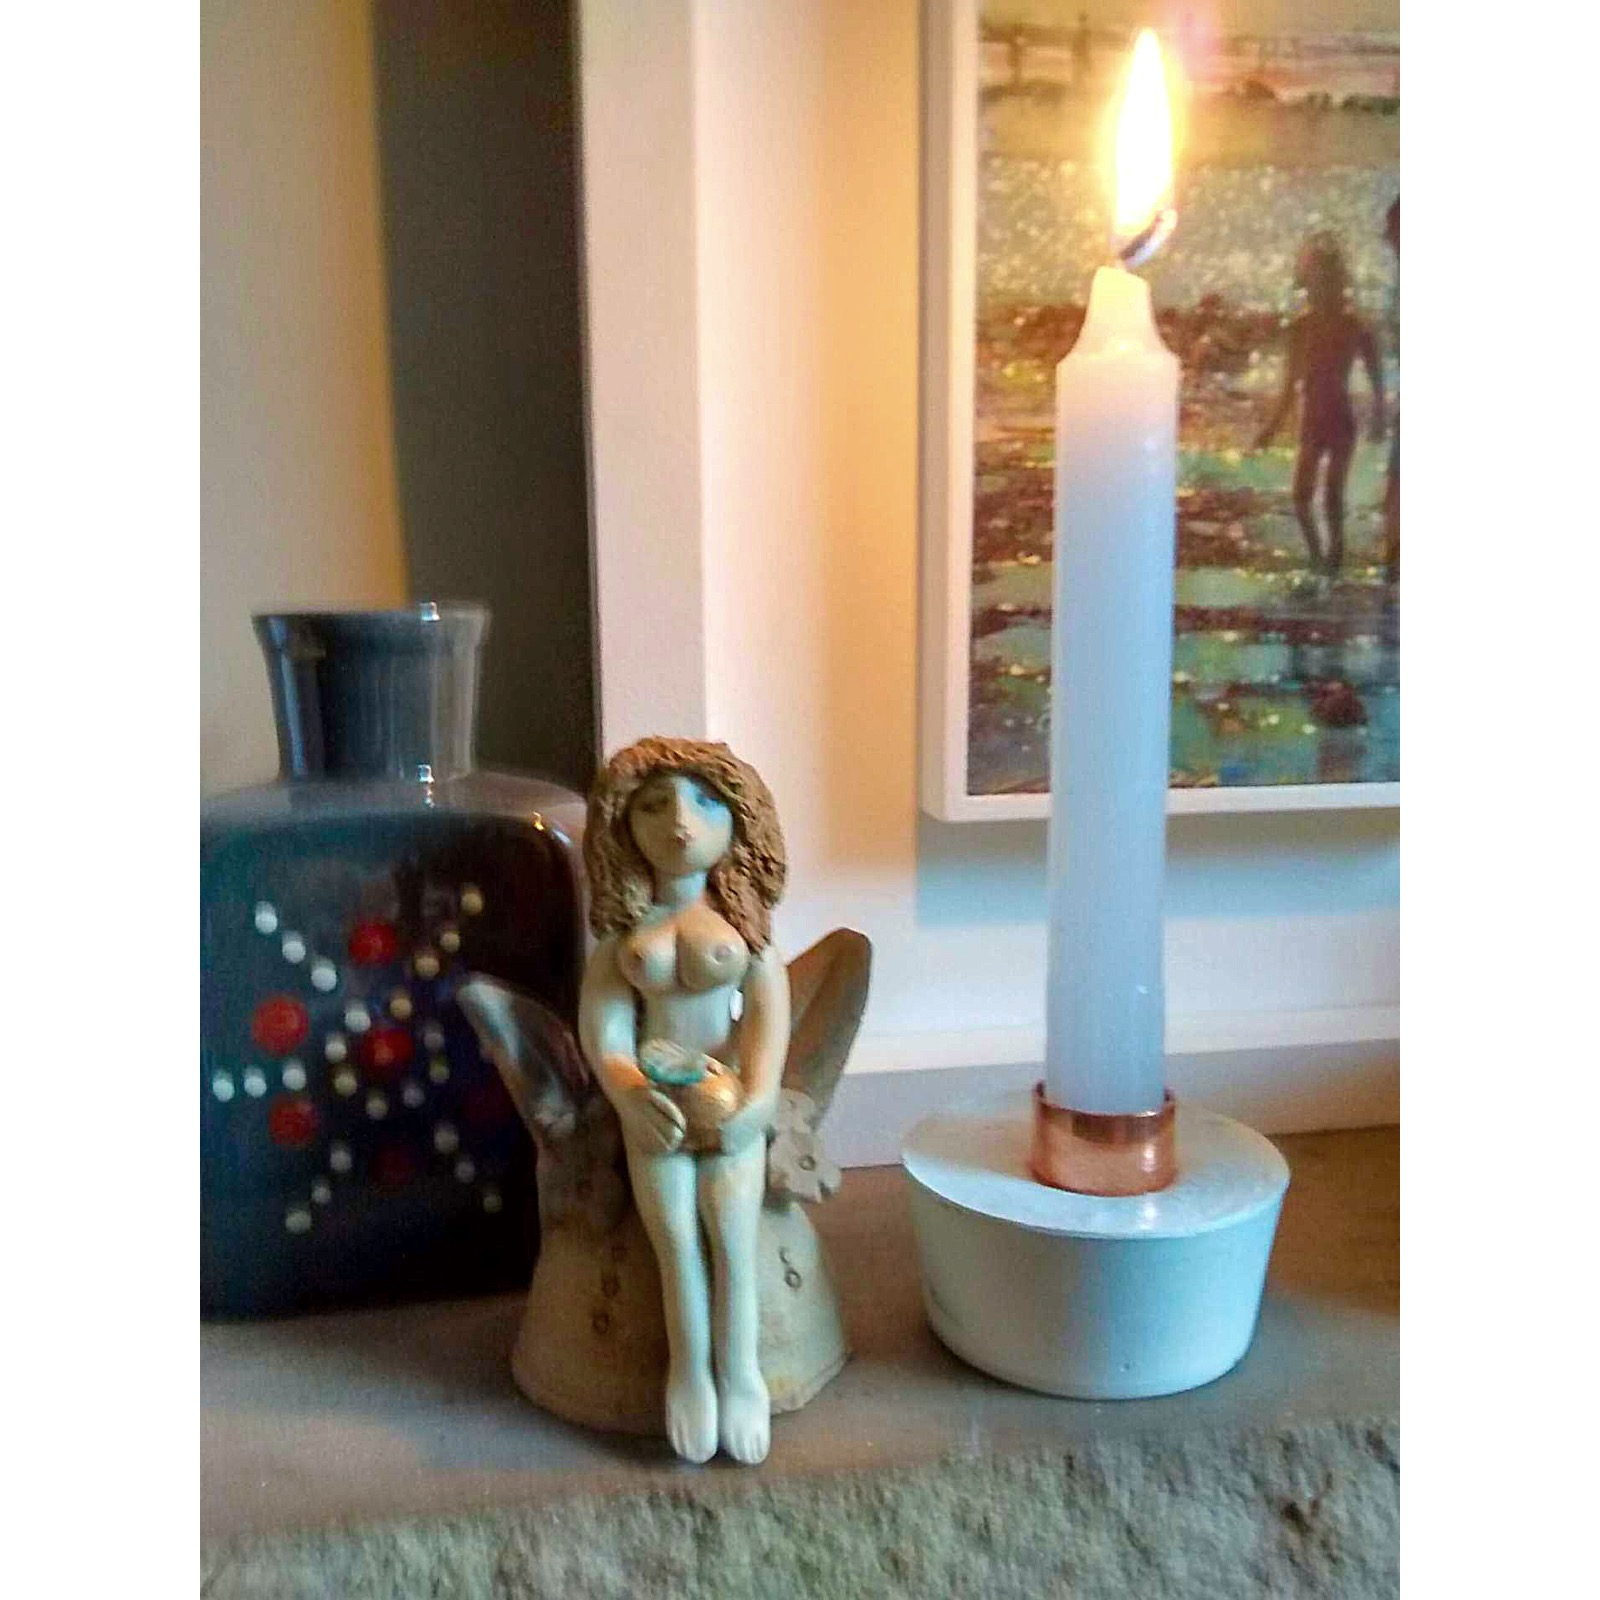 'White edition' candle holder by the wonderful Copper + Solder sitting nicely on the stone shelf, next to the naked lady Eve!